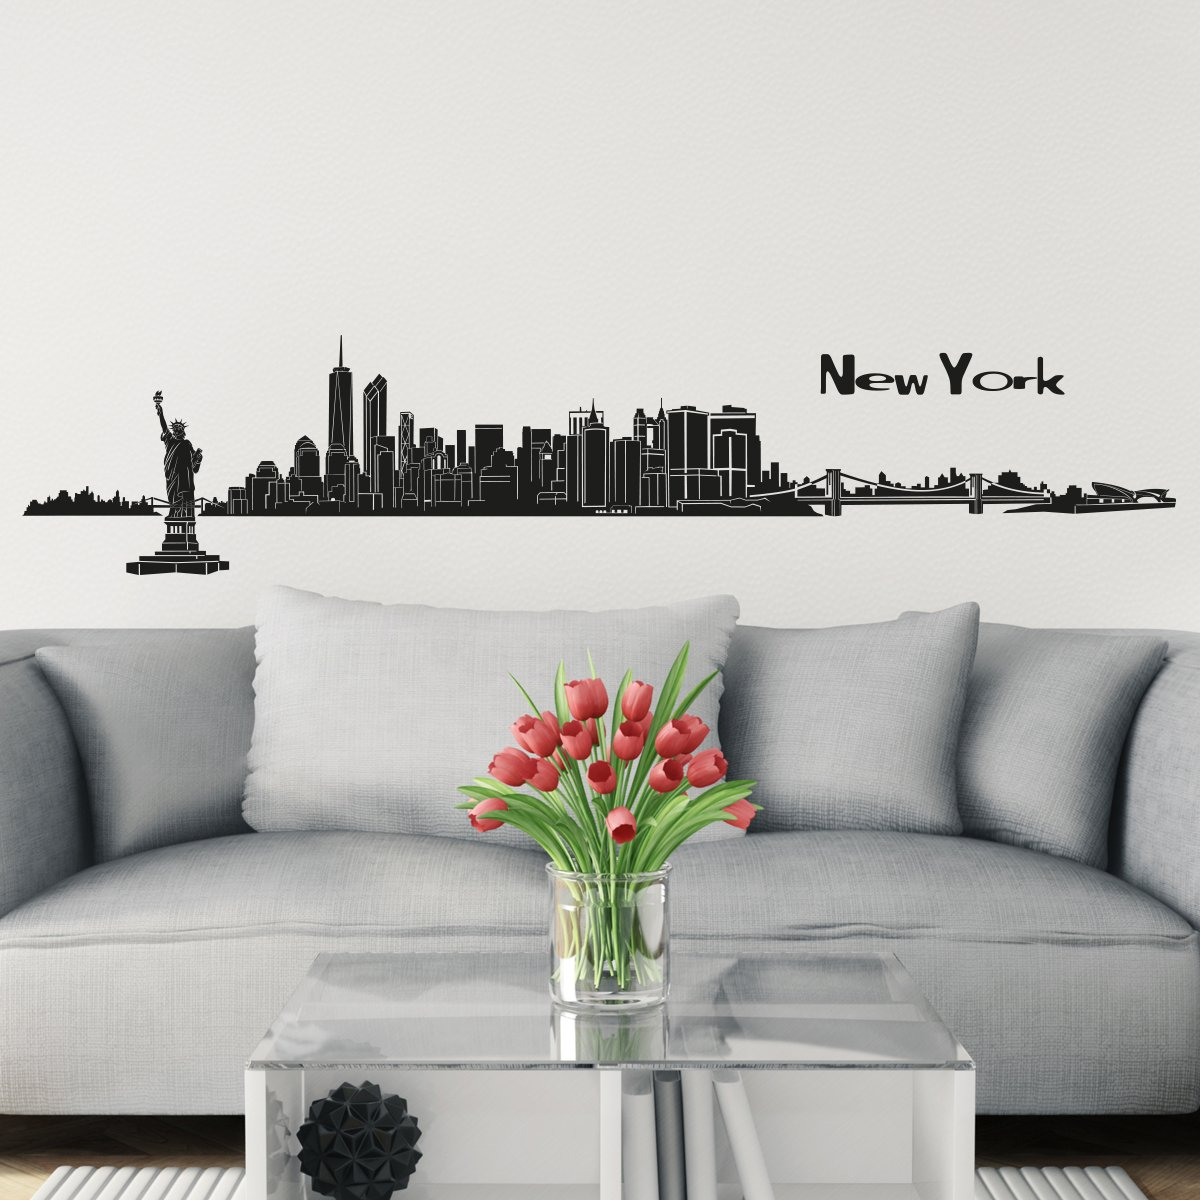 wandkings skyline wall sticker wall decal 48 8 x 7 9 inch in wandkings skyline wall sticker wall decal 48 8 x 7 9 inch in black your city selectable new york amazon com